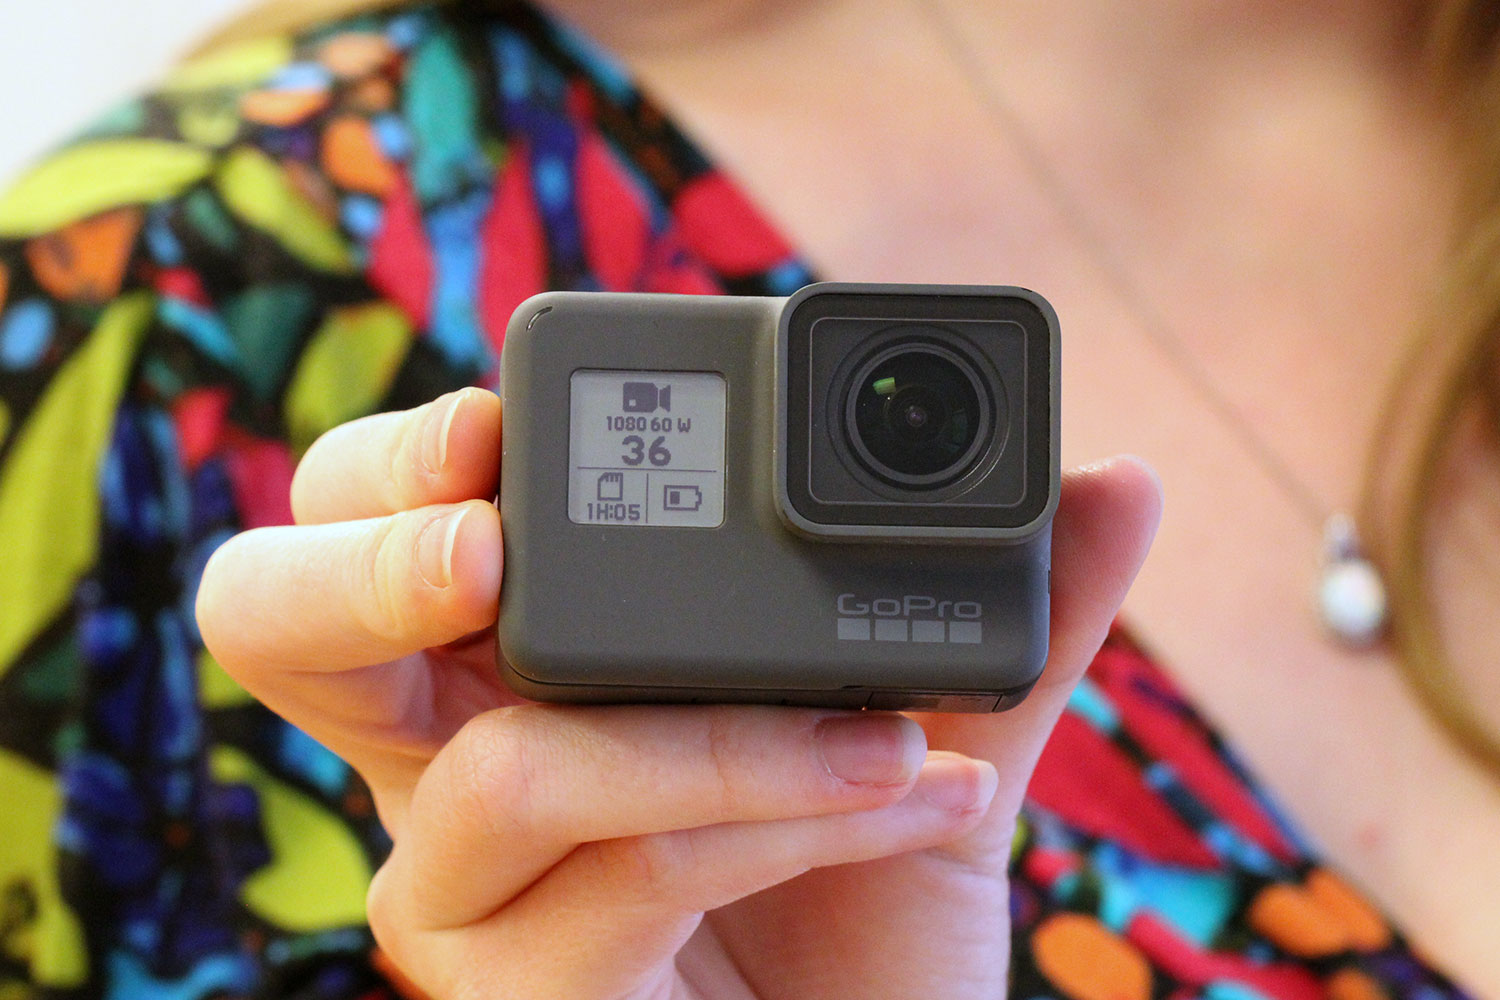 GoPro Launches Trade-Up Program to Ramp HERO5 Camera Sales